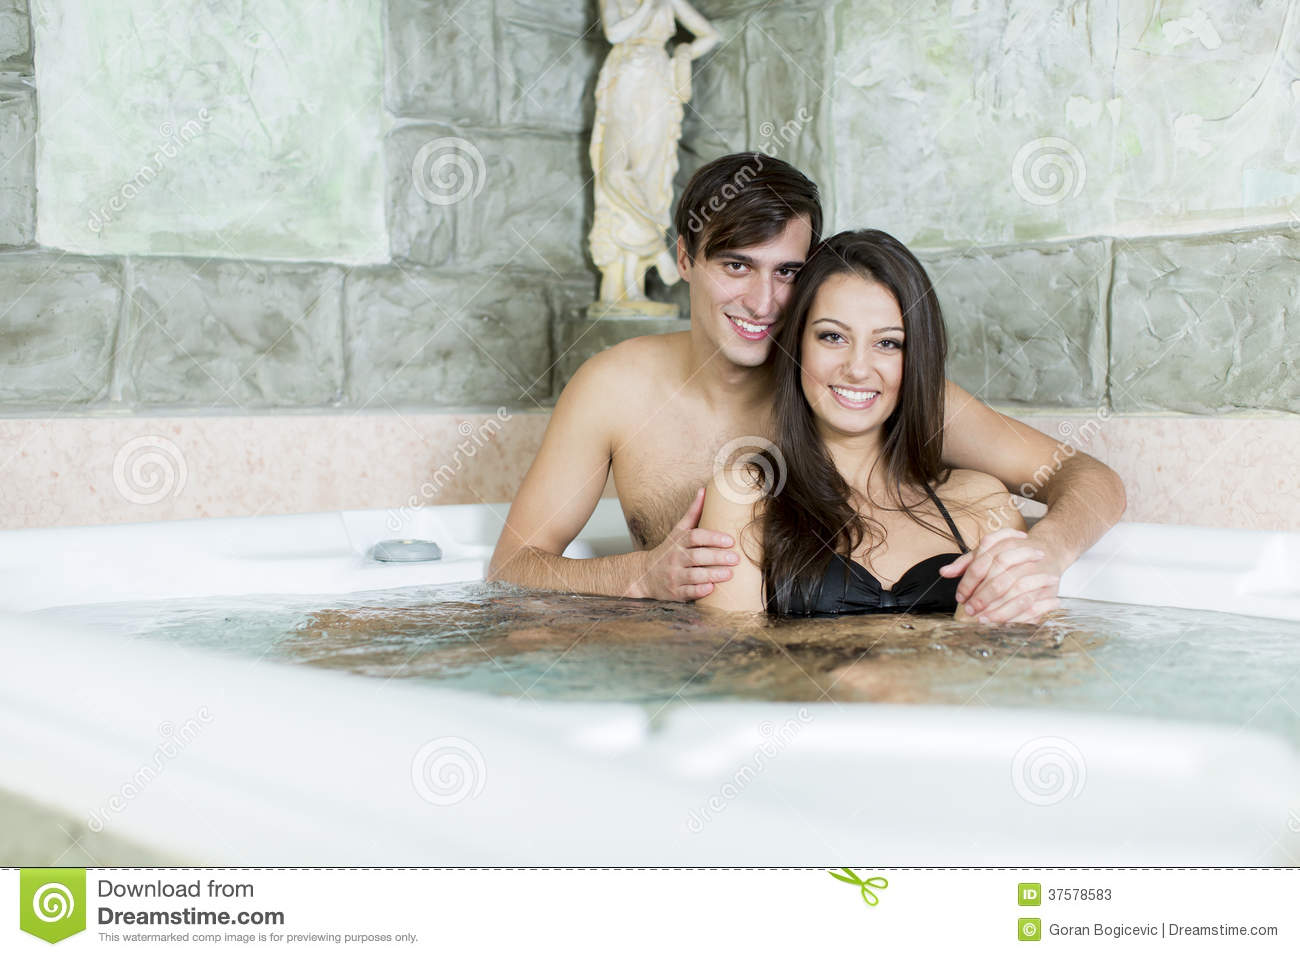 EroticaX Young couple romantic & passionate bathtub